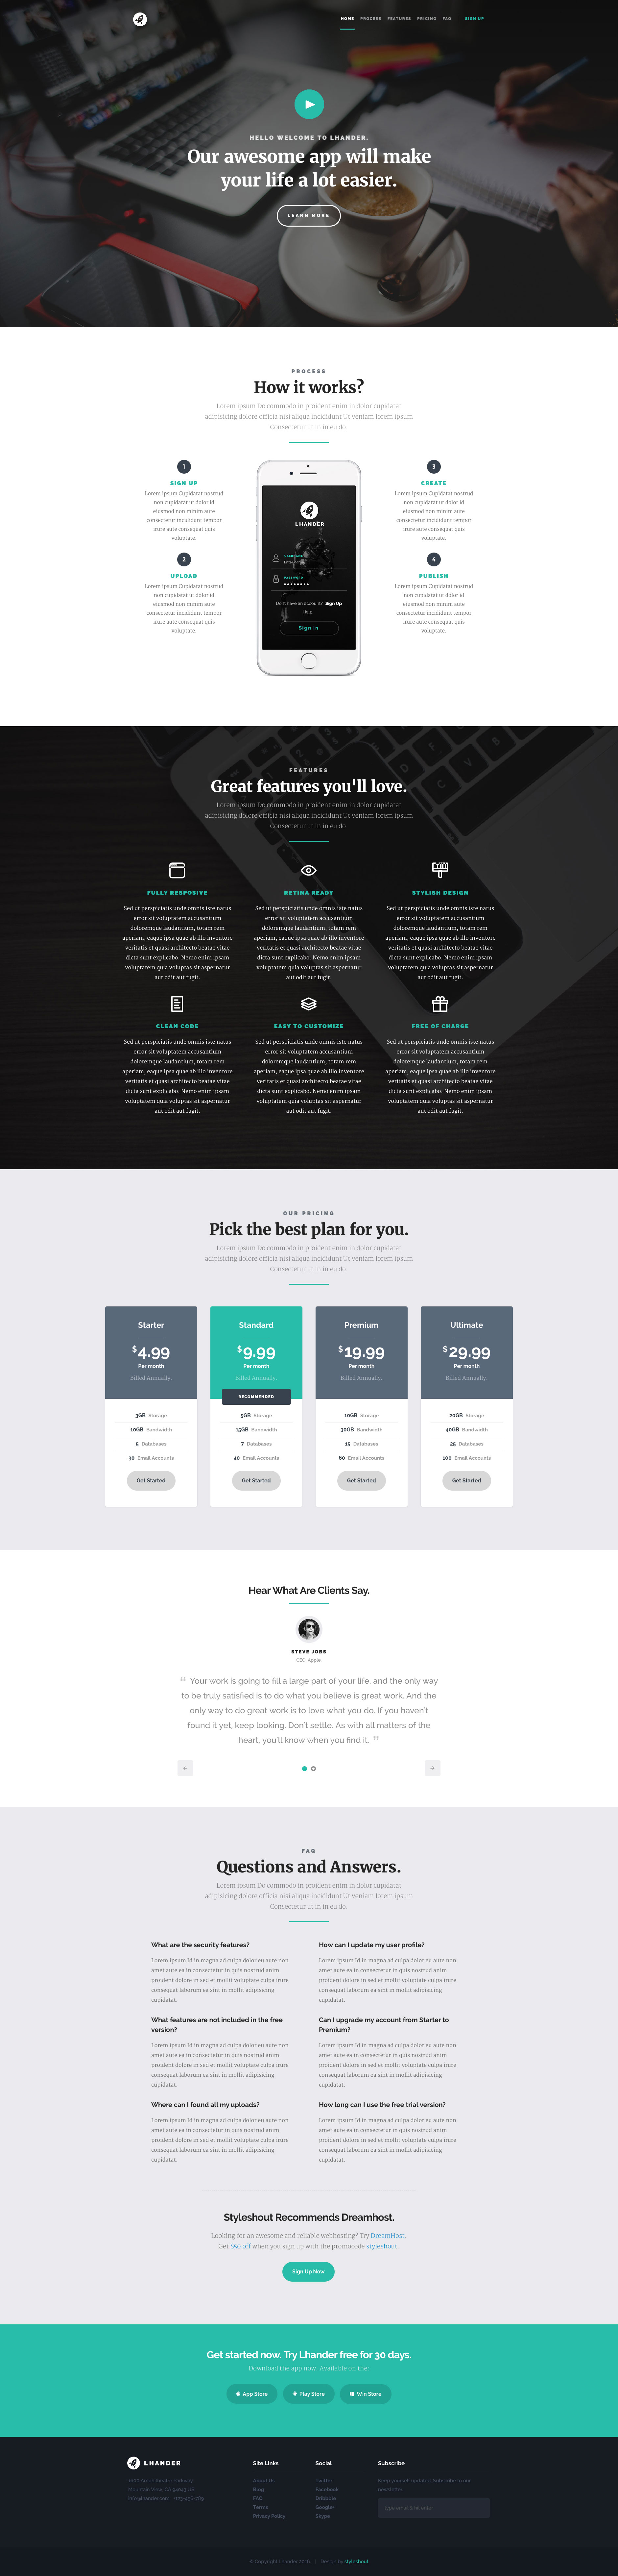 Lhander is a modern and minimal free responsive landing page site template. The perfect HTML5 template to showcase your app products and services.